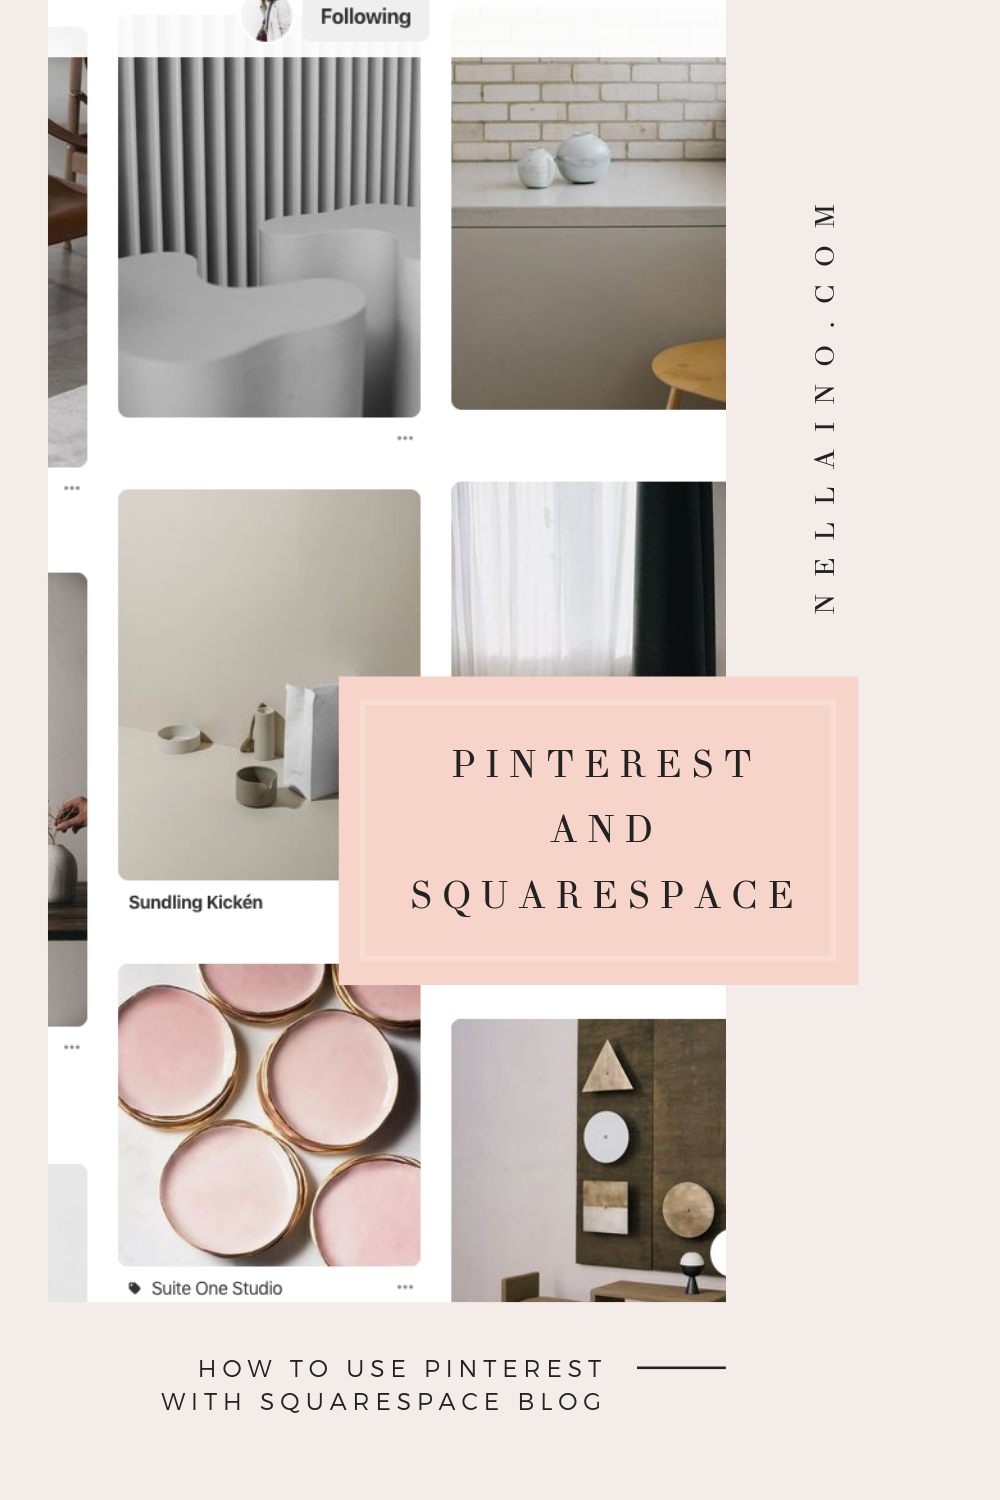 Have you troubles with Squarespace and how to use if for Pinterest SEO? No worry anymore! Read my blog post how you can optimize your Squarespace blog to better search engine optimization. www.nellaino.com/blog #nellaino #squarespacetips #pinteresttips #squarespacetutorial